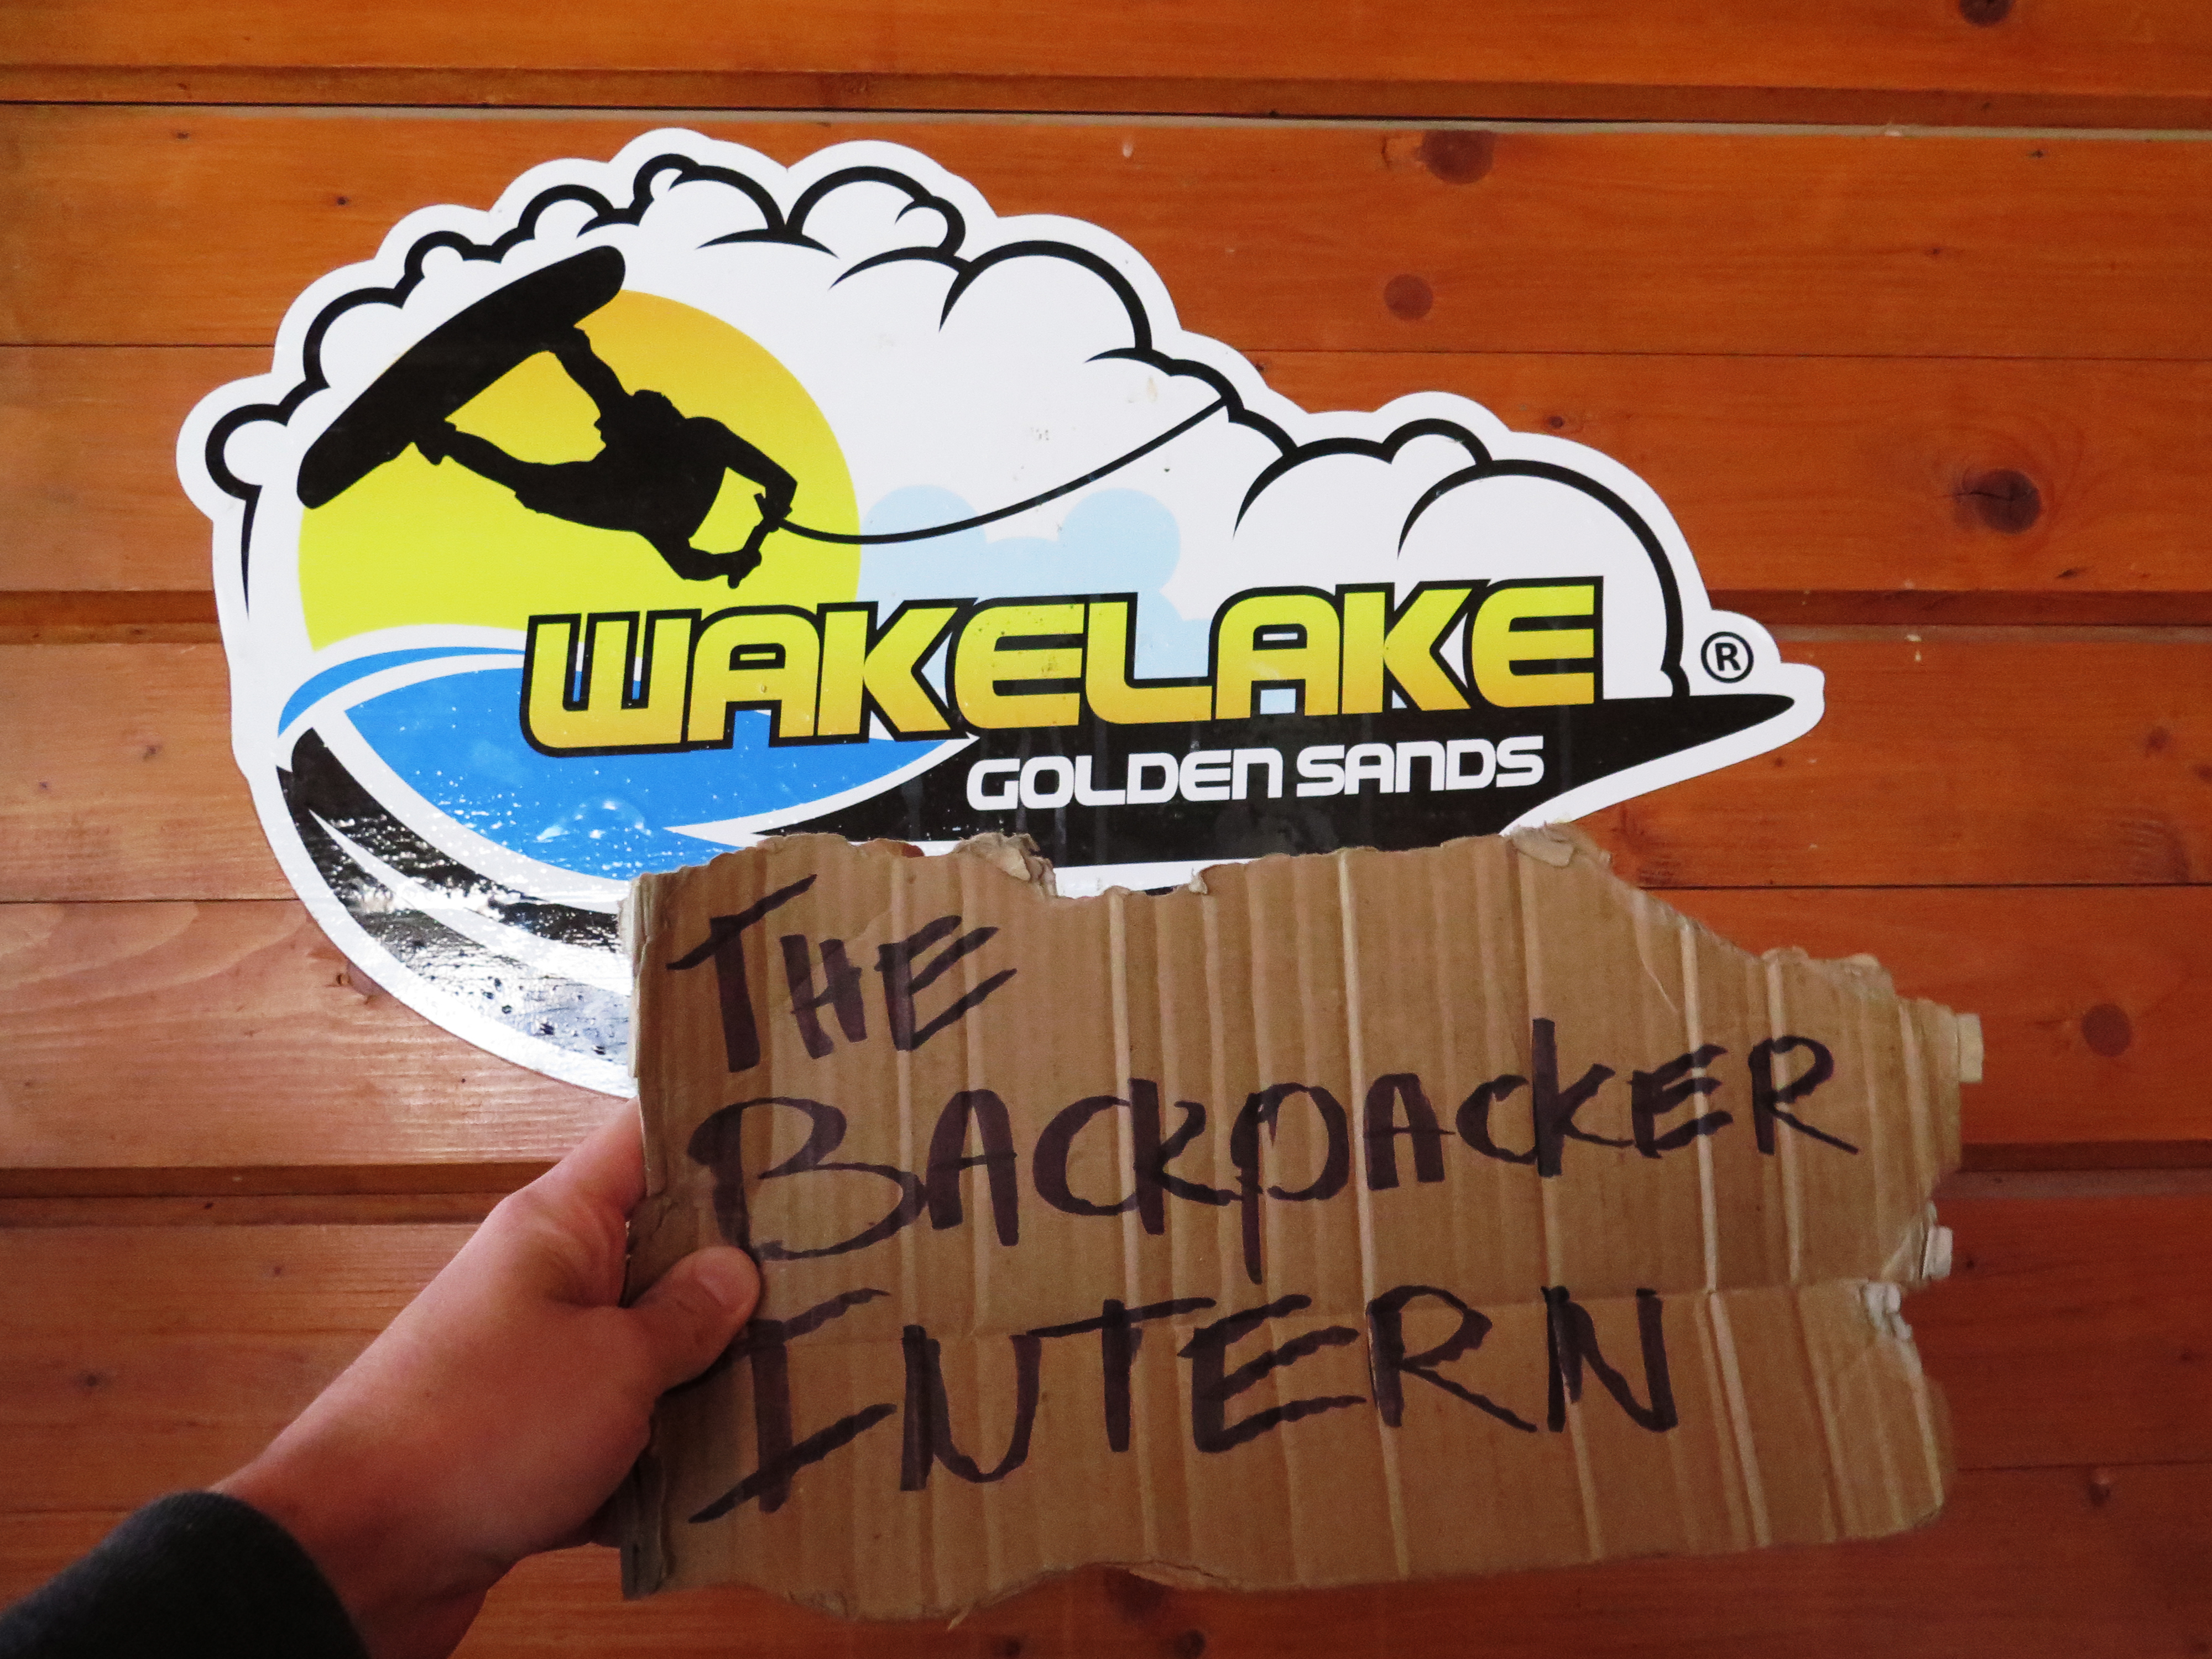 The Backpacker Intern + Wakelake Slovakia